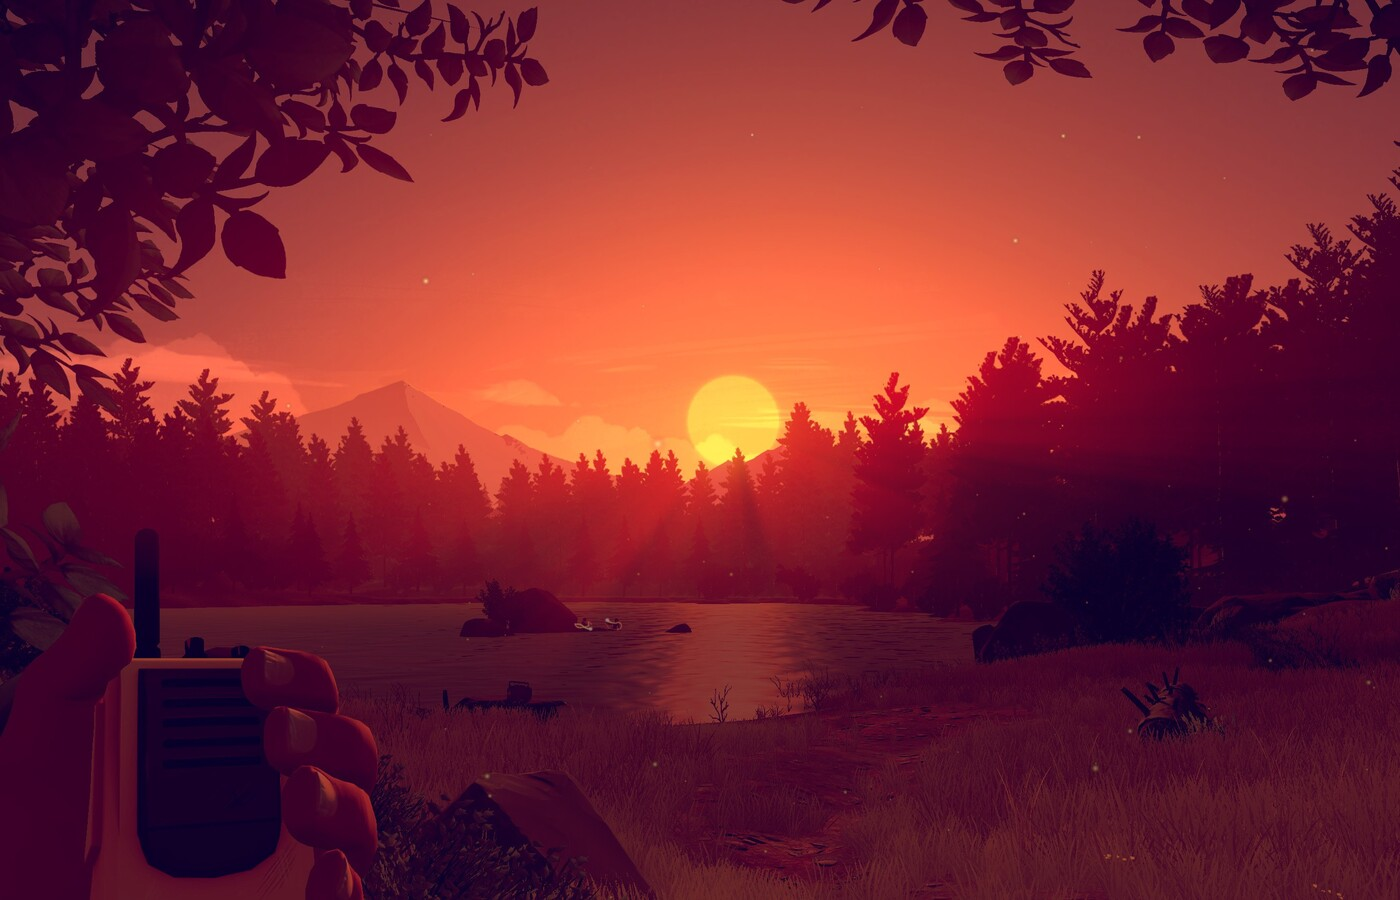 firewatch-game-sunset-wallpaper.jpg